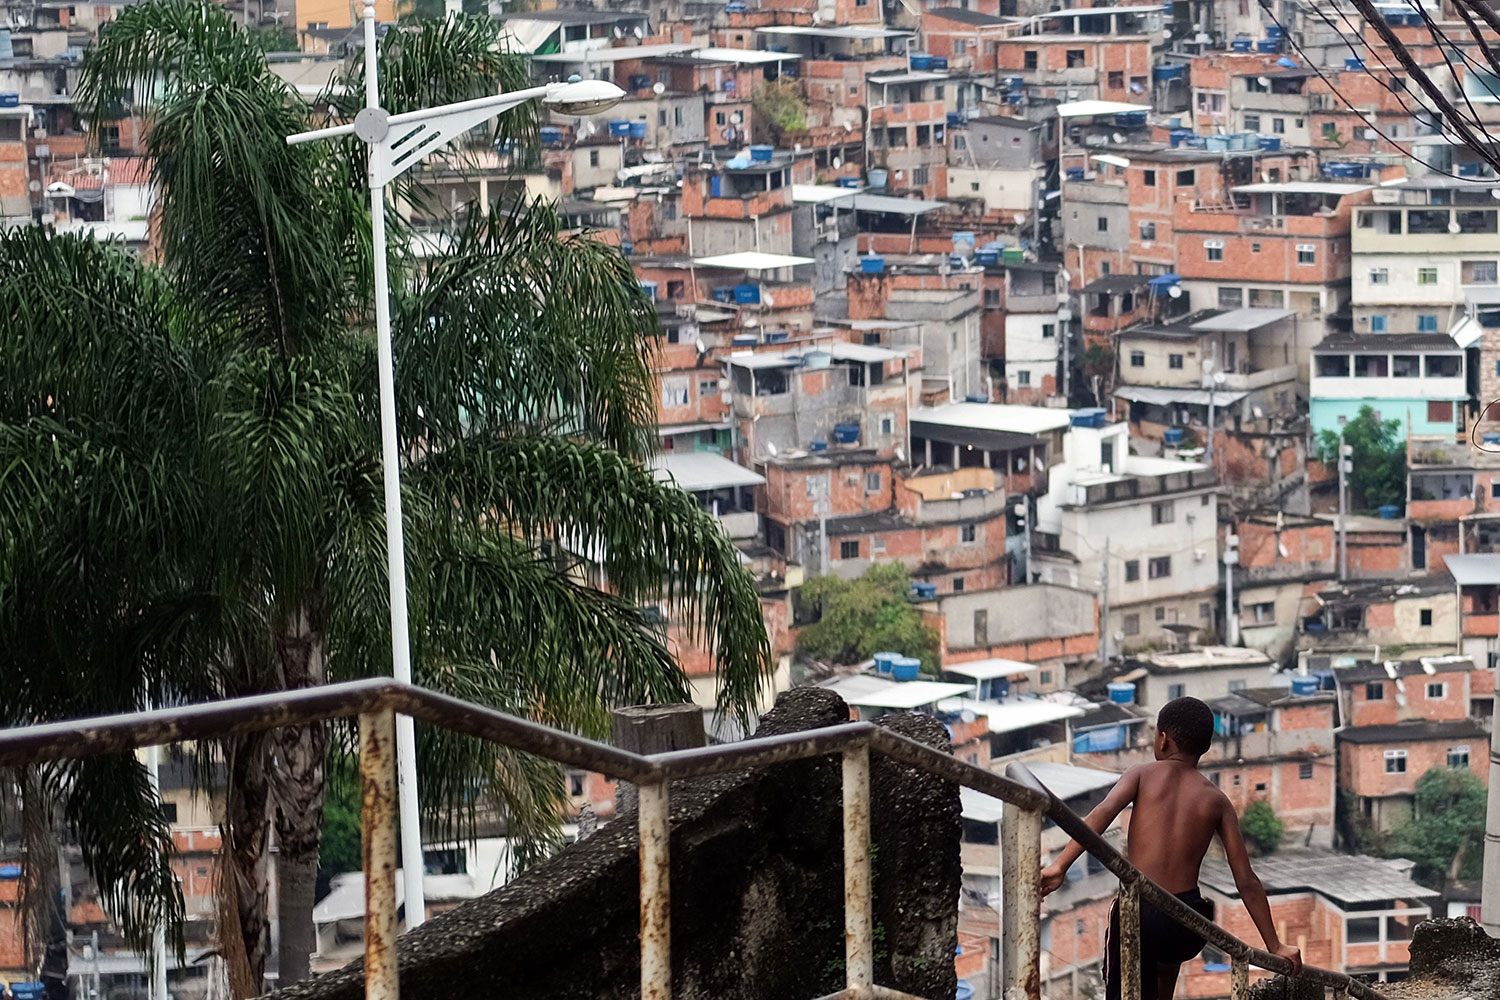 The picture shows a bow on a long staircase leading down to an area of the slum. Picture taken March 22,2020.